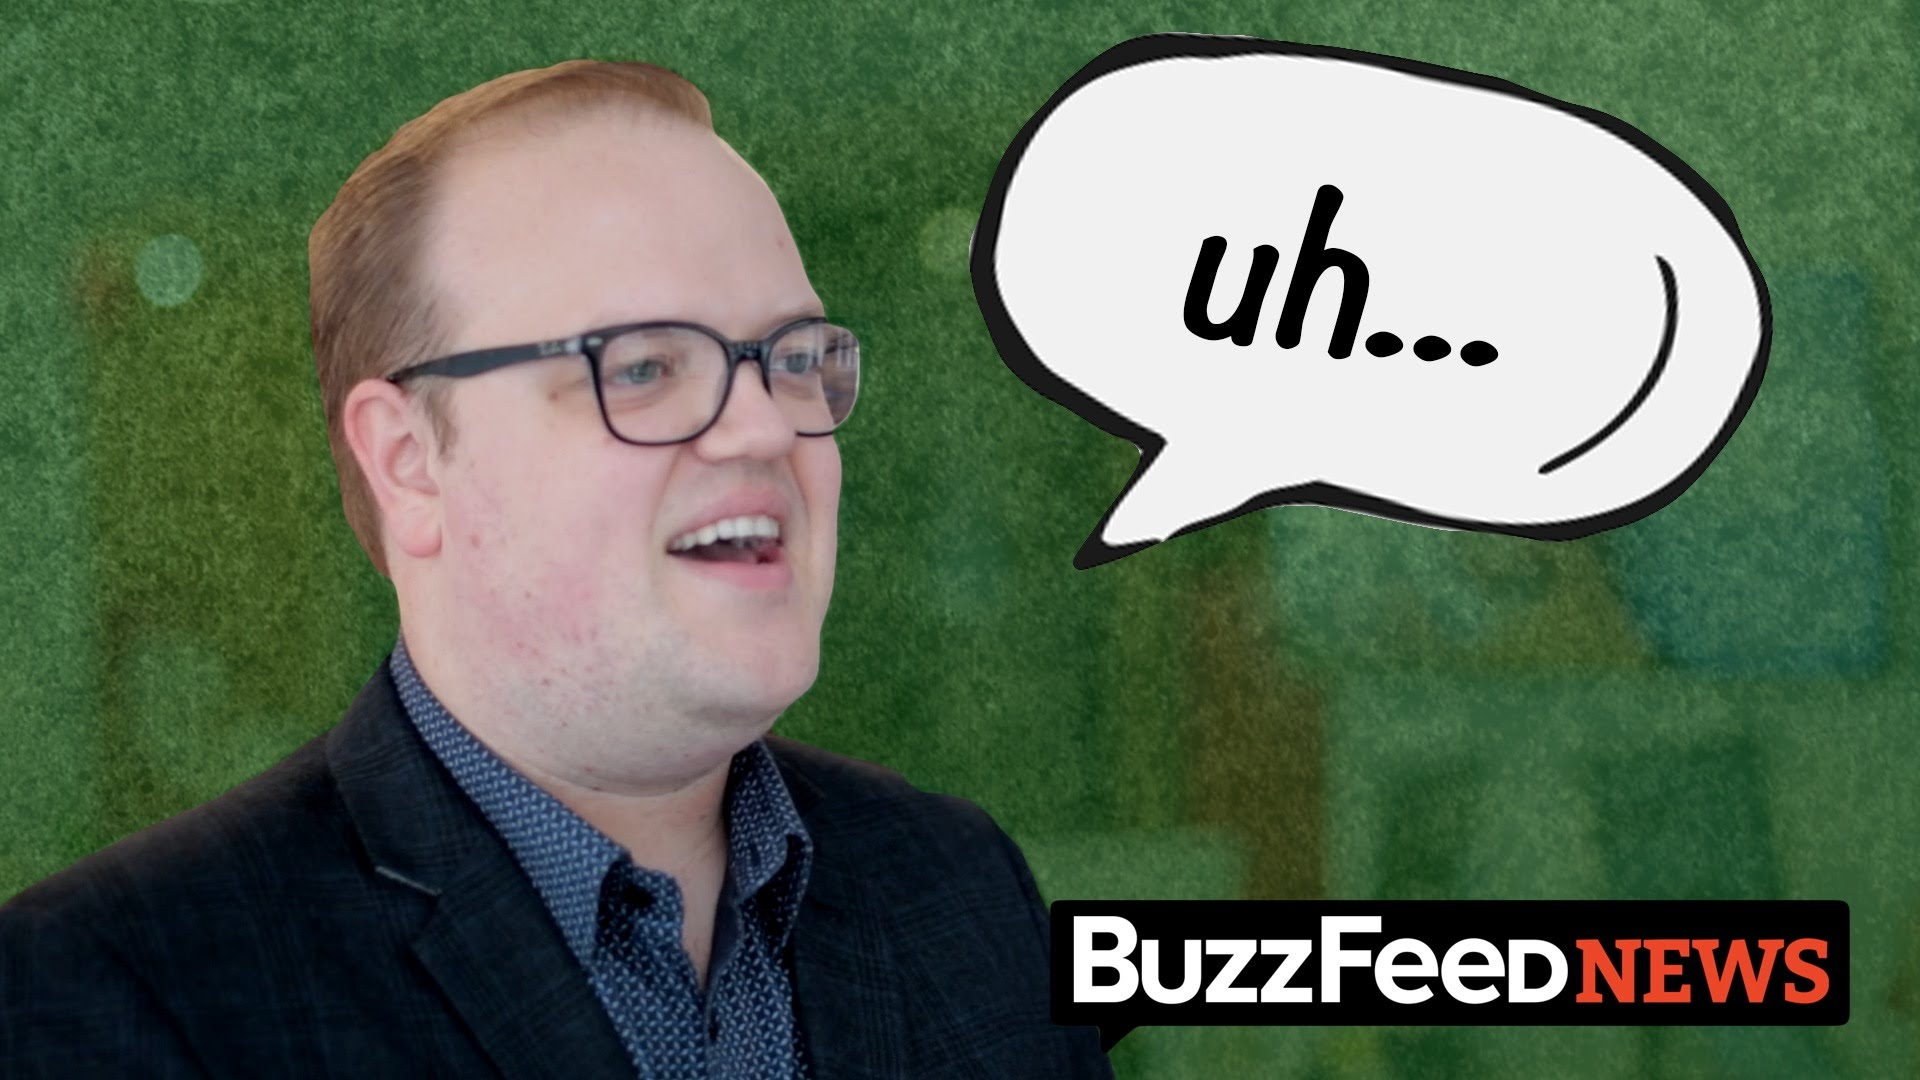 Image: Why I left BuzzFeed: Former employees speak out against media company and fake news outlet